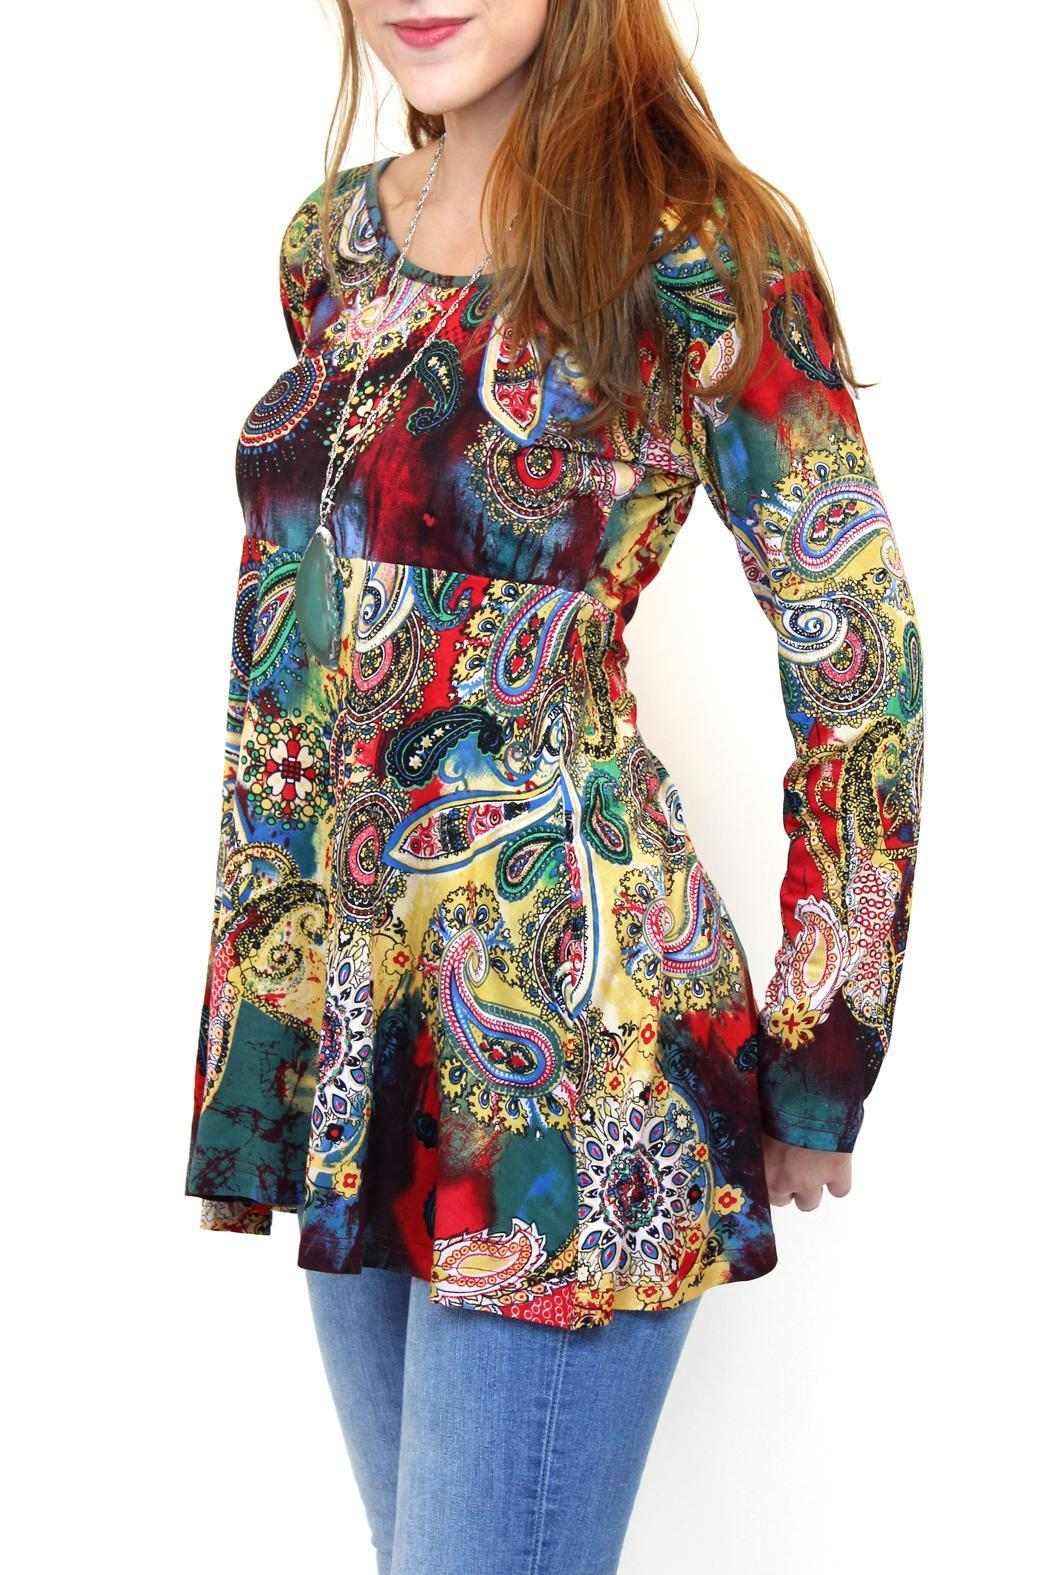 fashion_fuse watercolour paisley tunic multicolor dd7c3791_l fashion fuse watercolour paisley tunic from vancouver by carte the fuse box paisley at nearapp.co